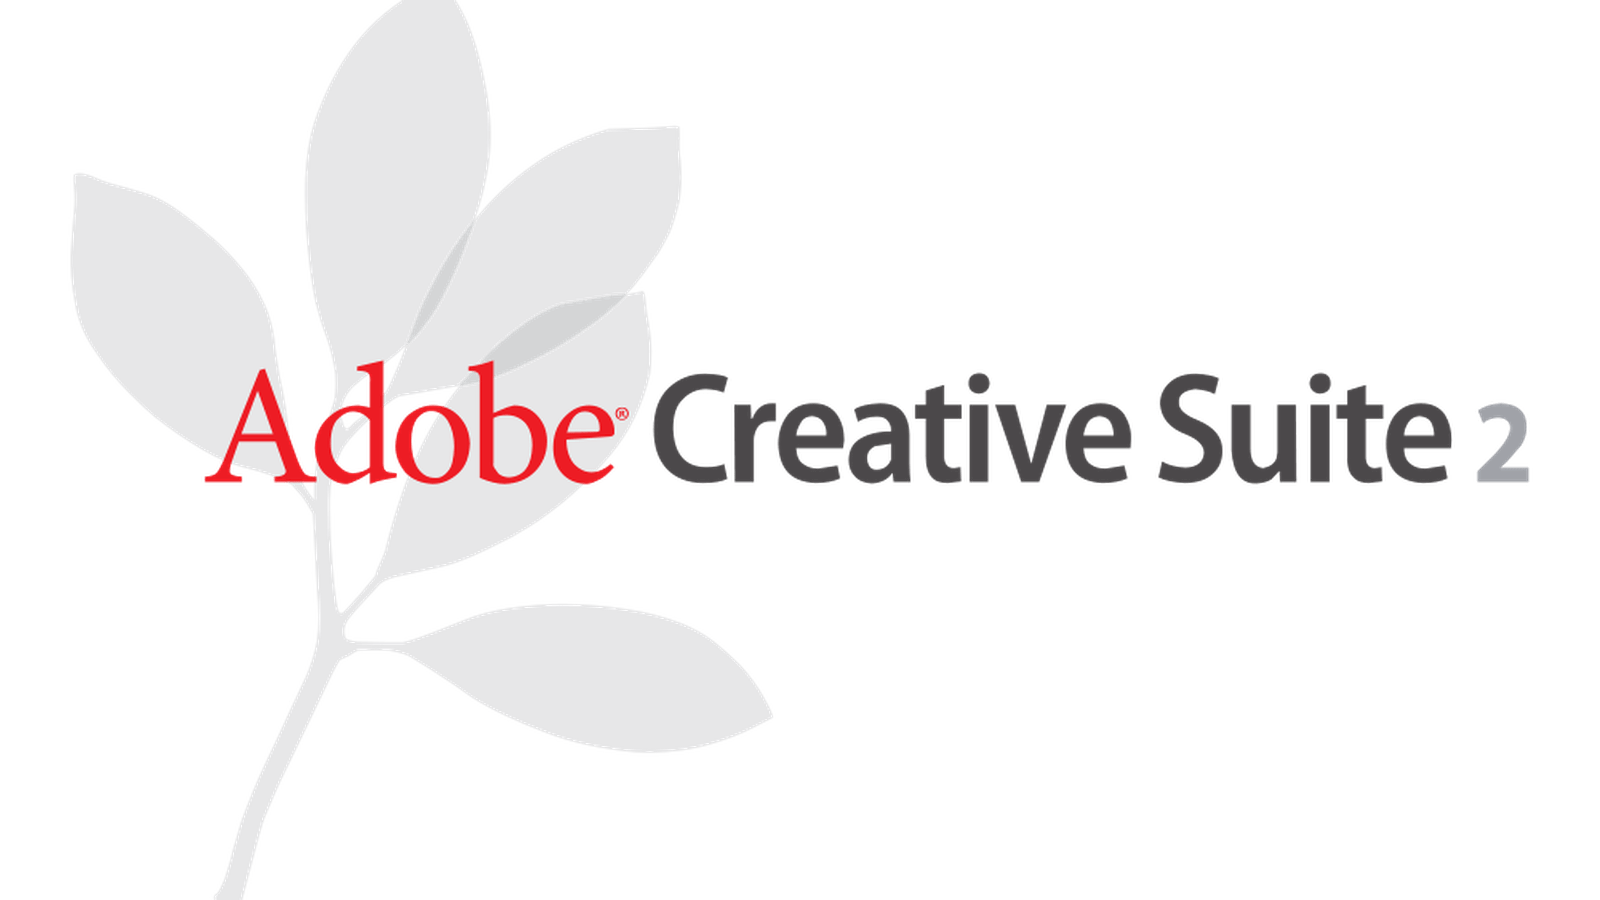 Adobe's Creative Suite 2 now available free of charge for